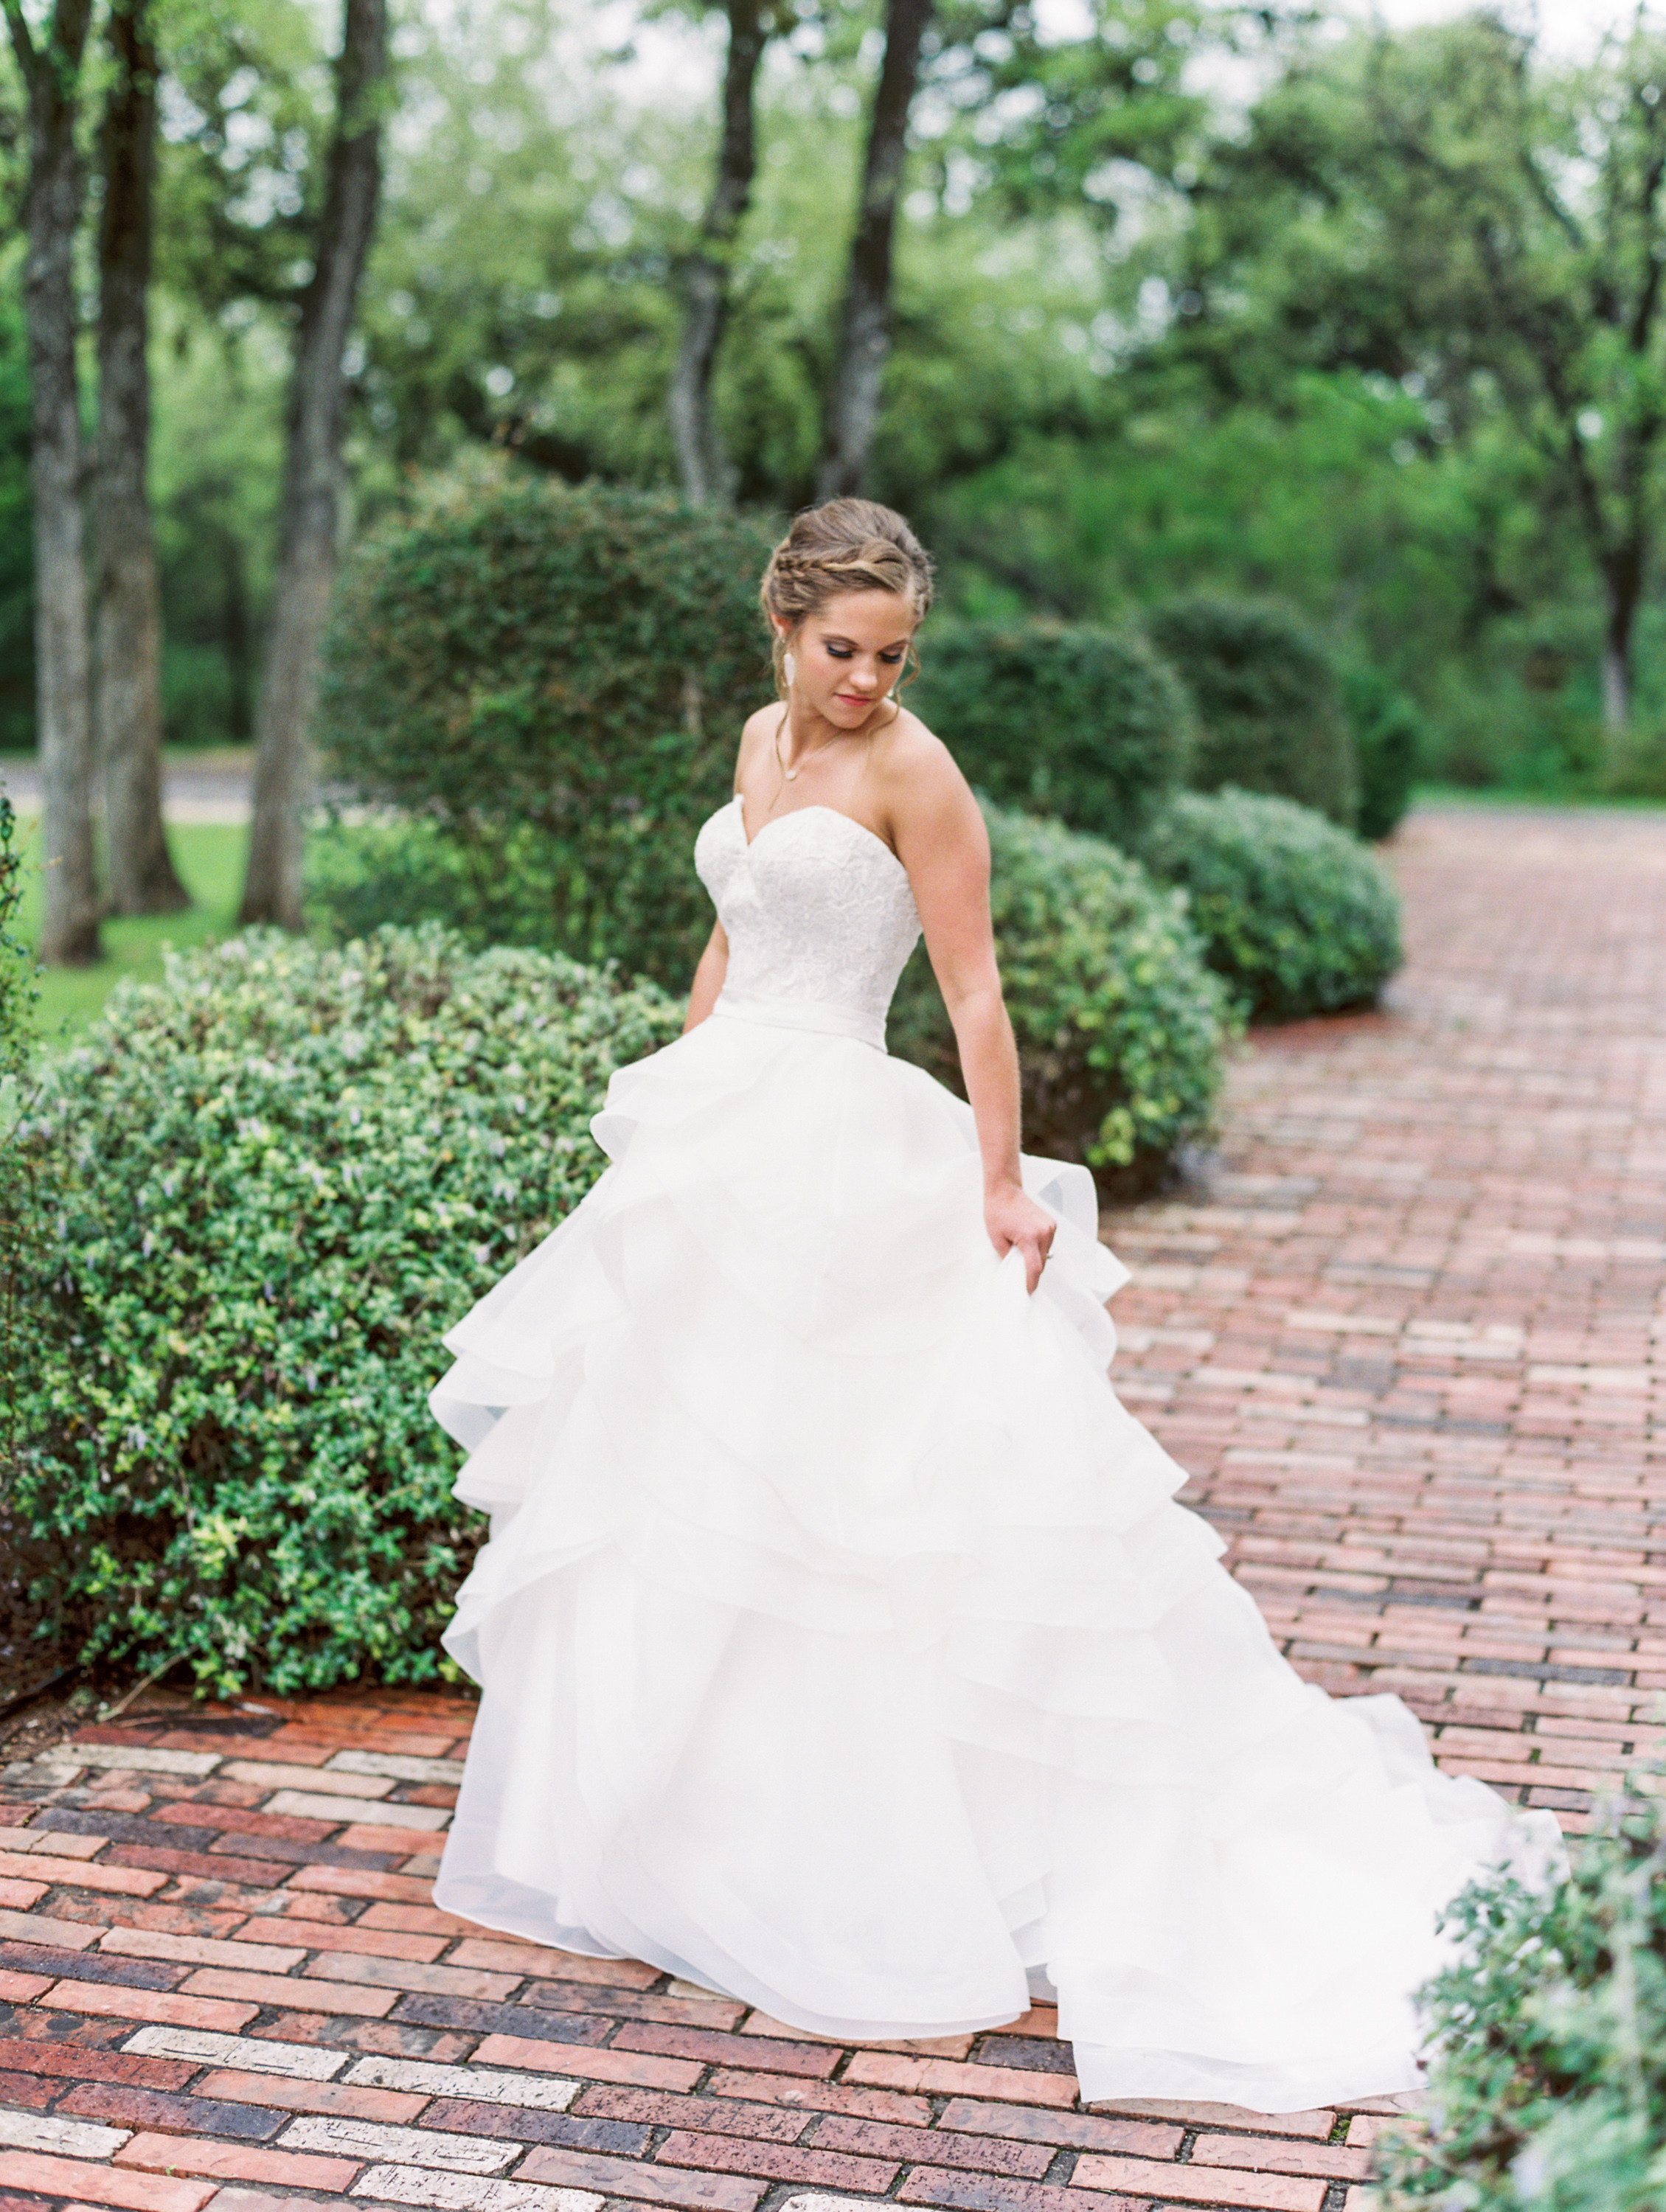 Hill Country Spring Wedding at Red Bud Hall | Austin Wedding Photographer | Film Wedding Photographer | Britni Dean Photography | Rainy Day Wedding Inspiration | ruffle wedding dress